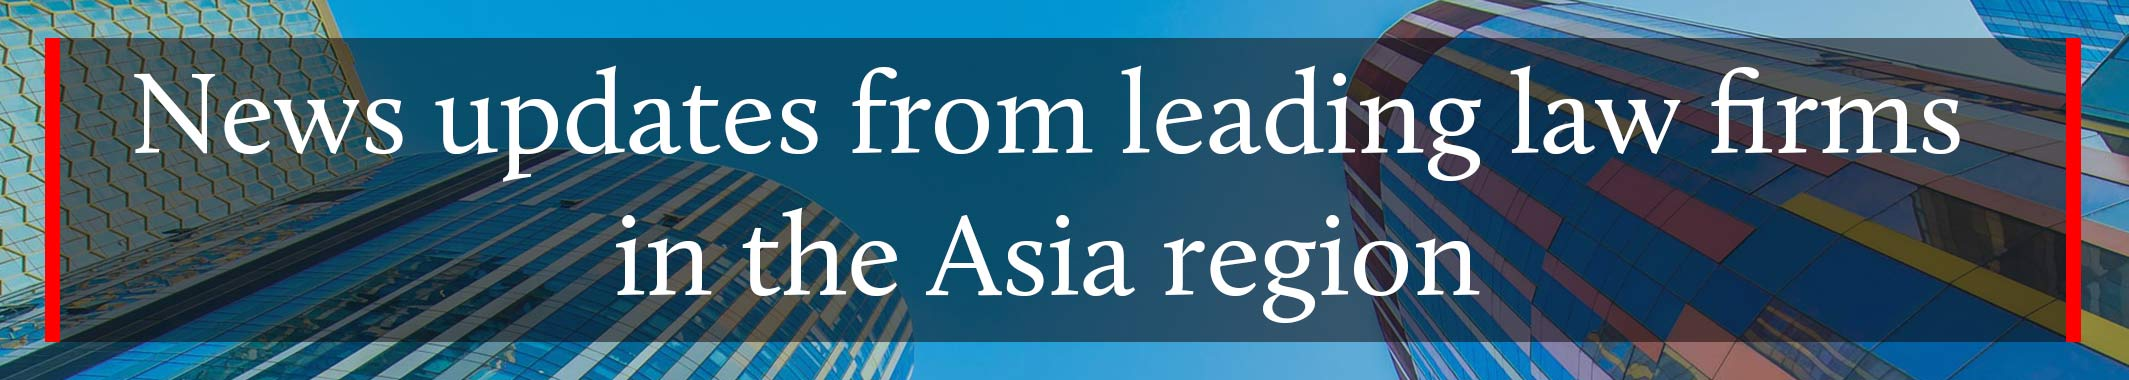 Legal-News-Updates-from-Leading-Law-Firms-in-Asia